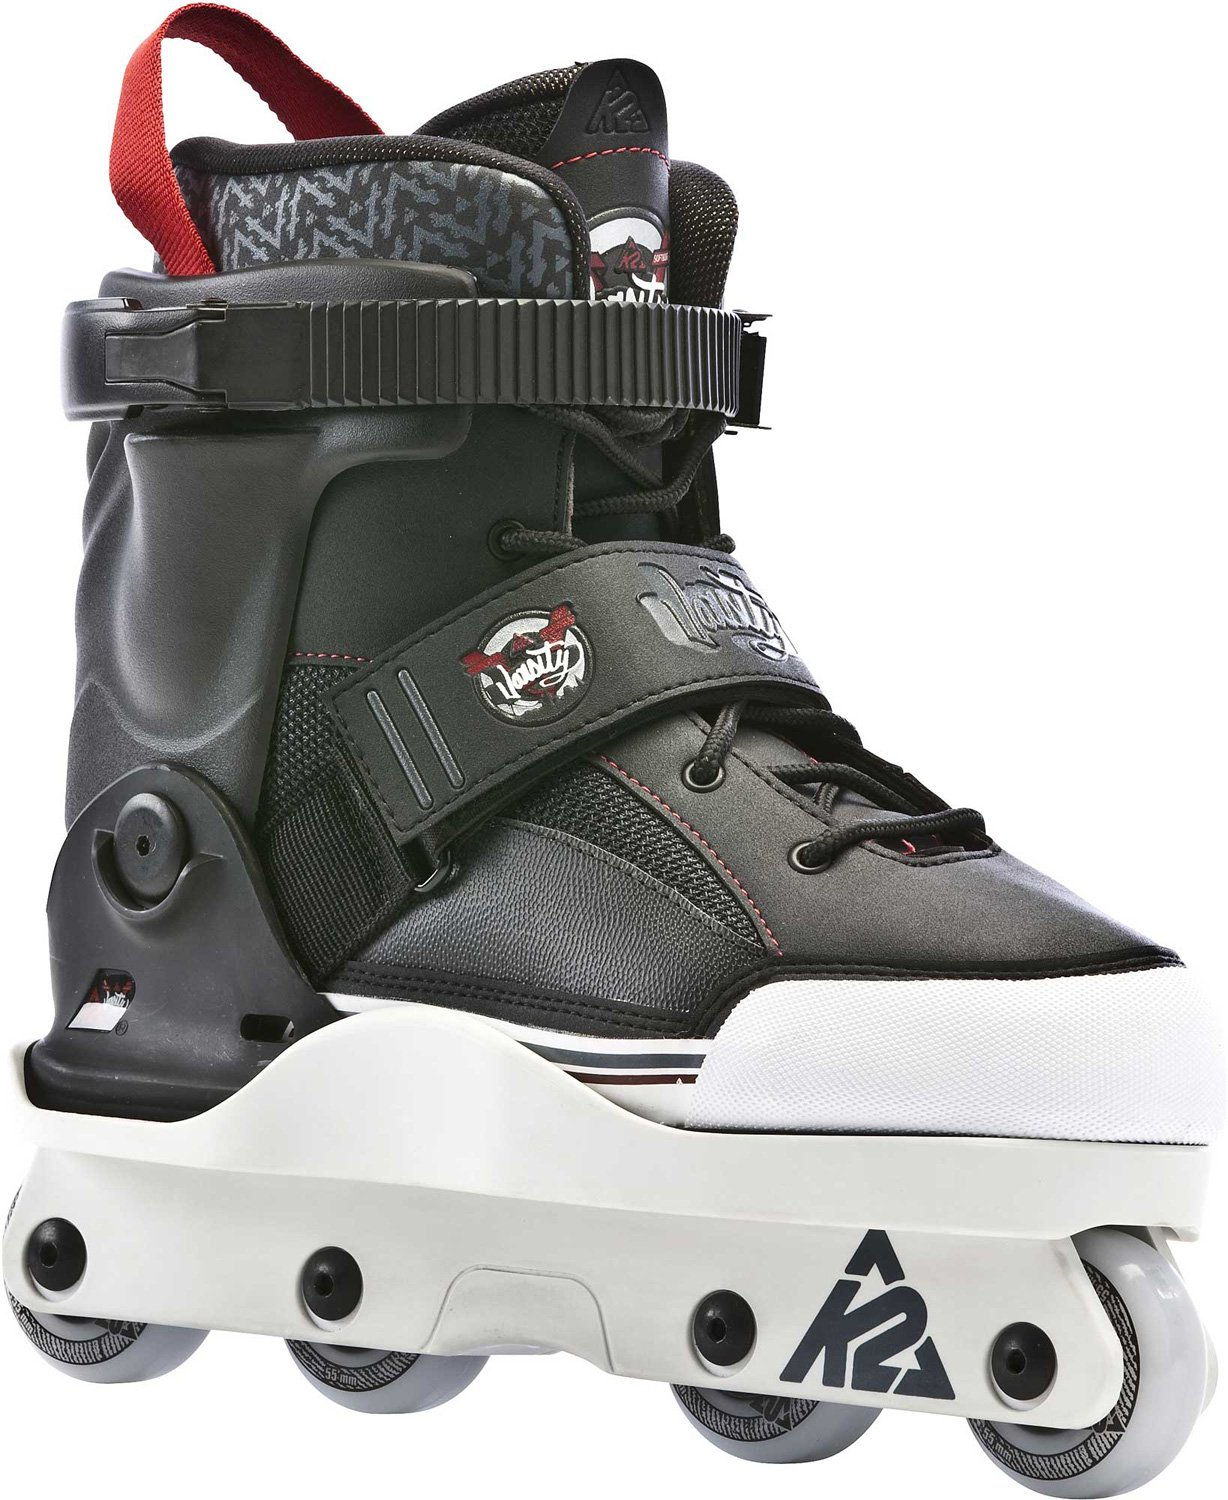 K2 Erwachsene Inlineskate Varsity Inliner Aggressive Skate